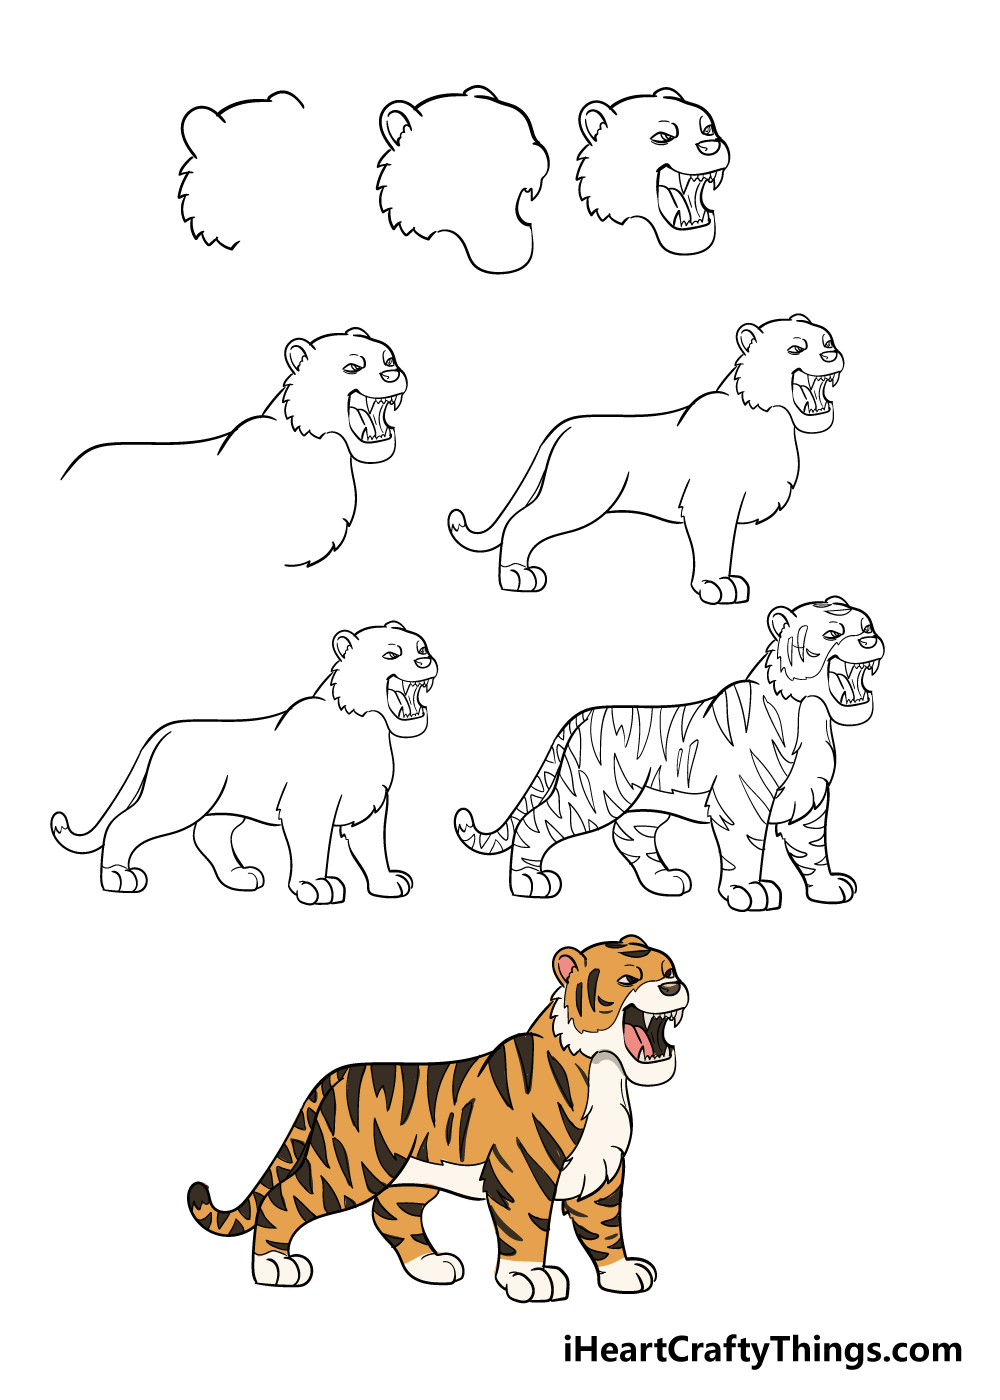 drawing tiger in 8 steps